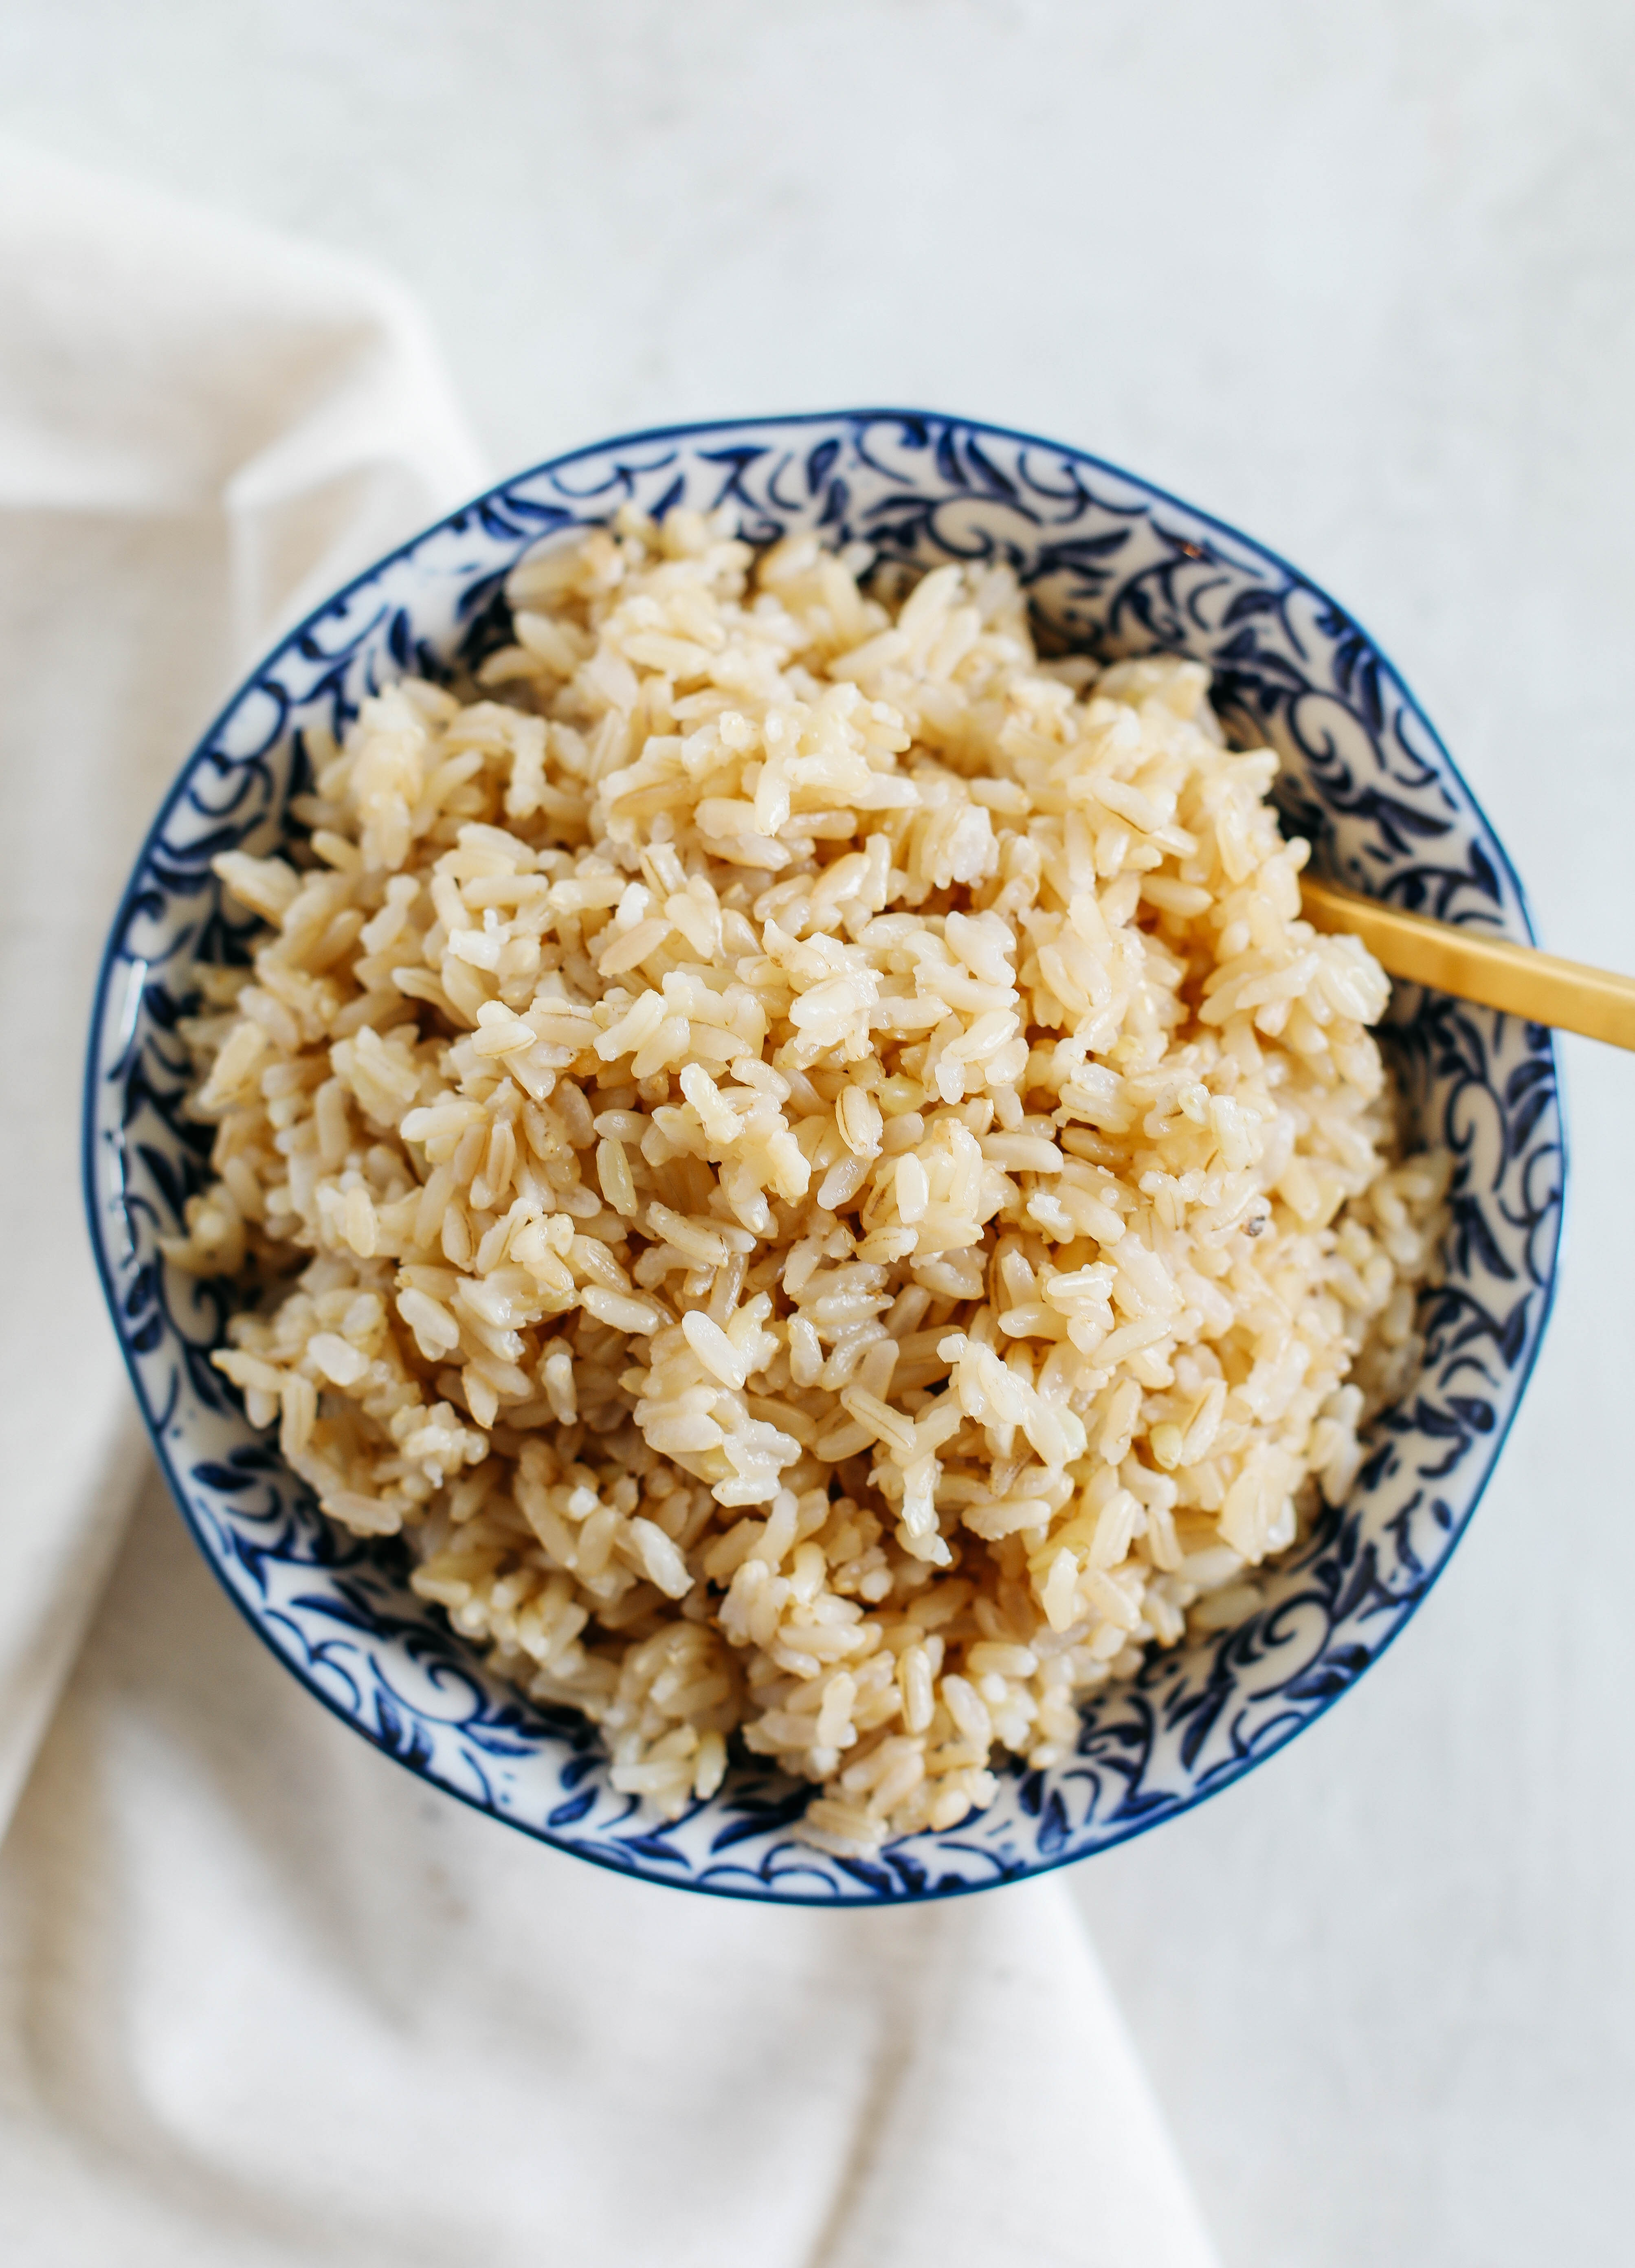 Perfectly cooked, fluffy brown rice EVERY TIME in about 30 minutes using the Instant Pot!  Hands down the easiest way to cook brown rice and perfect for meal prep!